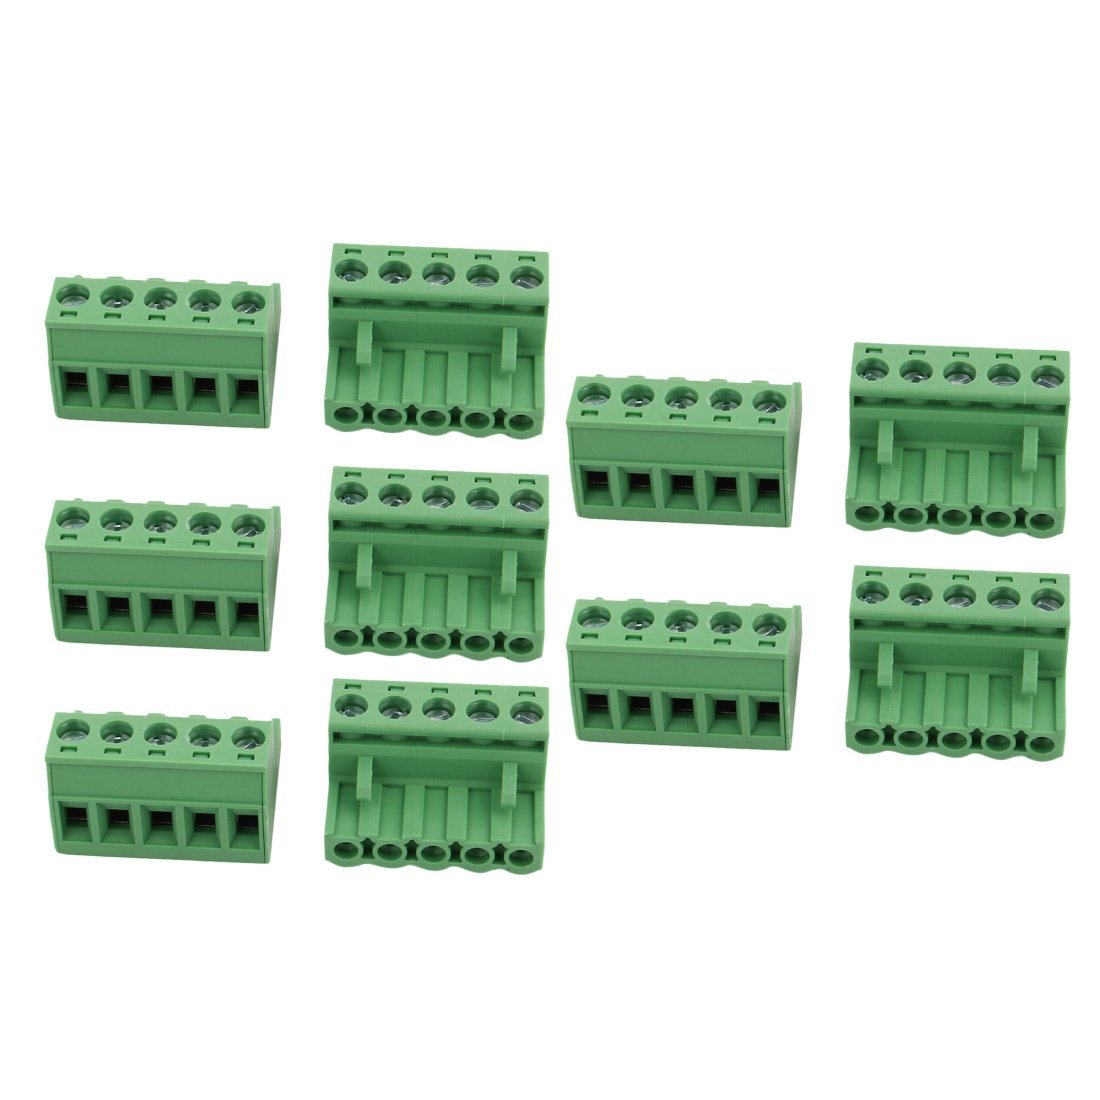 uxcell 10Pcs LC1 AC300V 15A 5.08mm Pitch 5P PCB Terminal Block Wire Connection